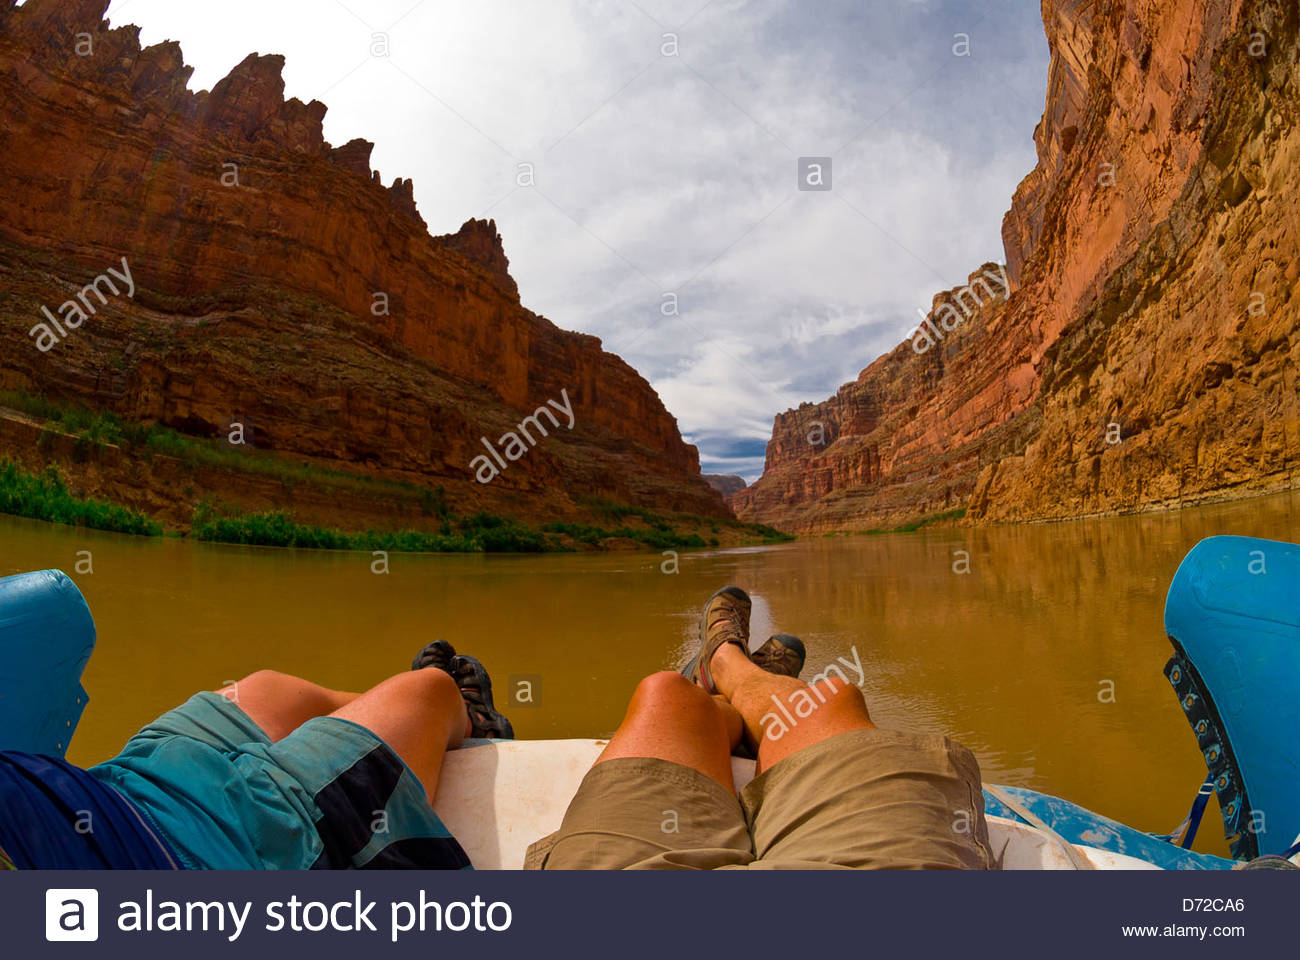 Cove, el Cañón del Río Colorado, Glen Canyon National Recreation Area, Utah, EE.UU. Foto de stock